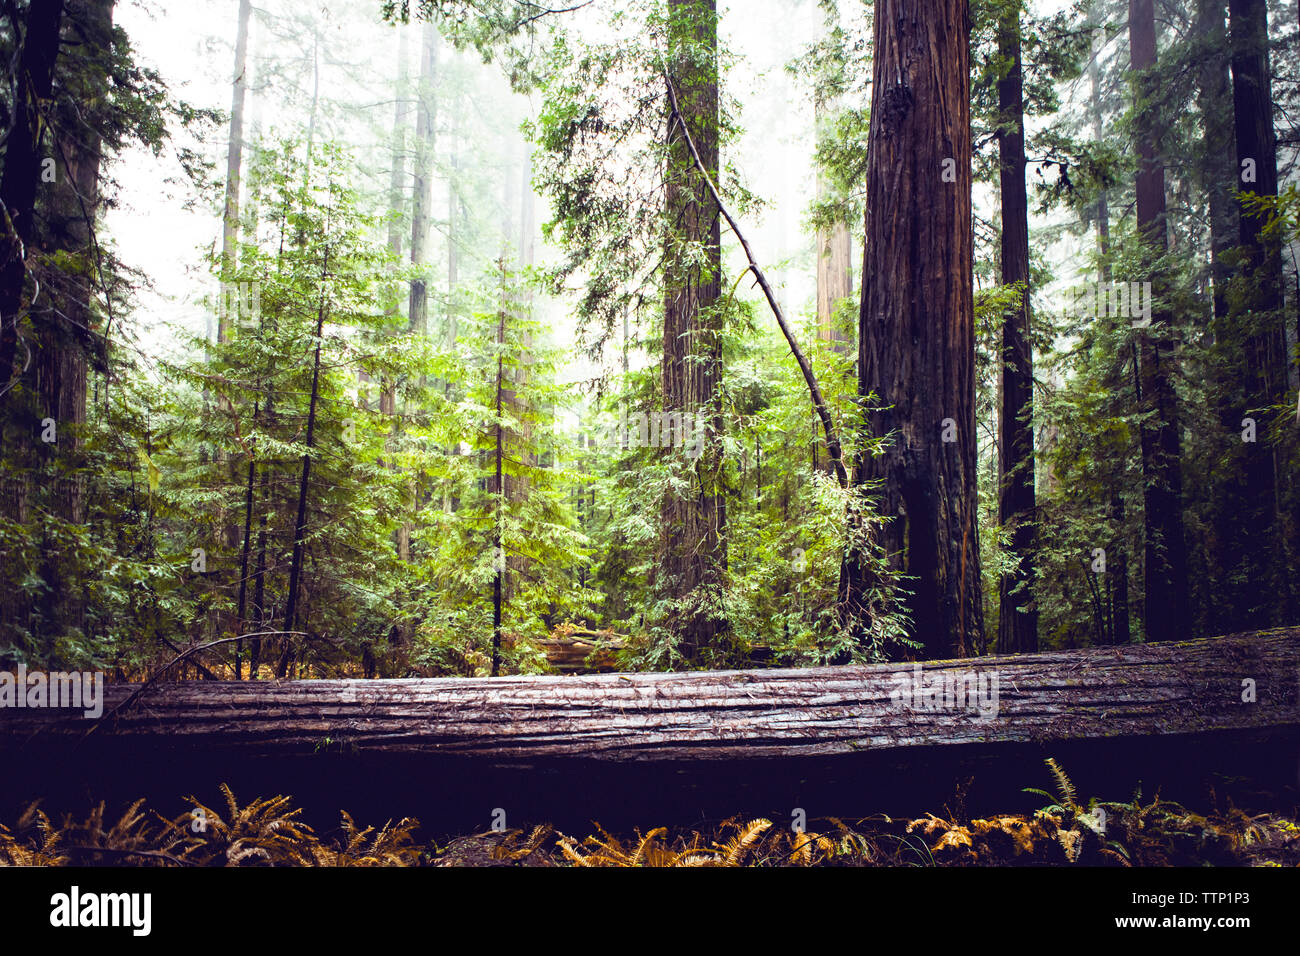 Redwood trees at state park - Stock Image